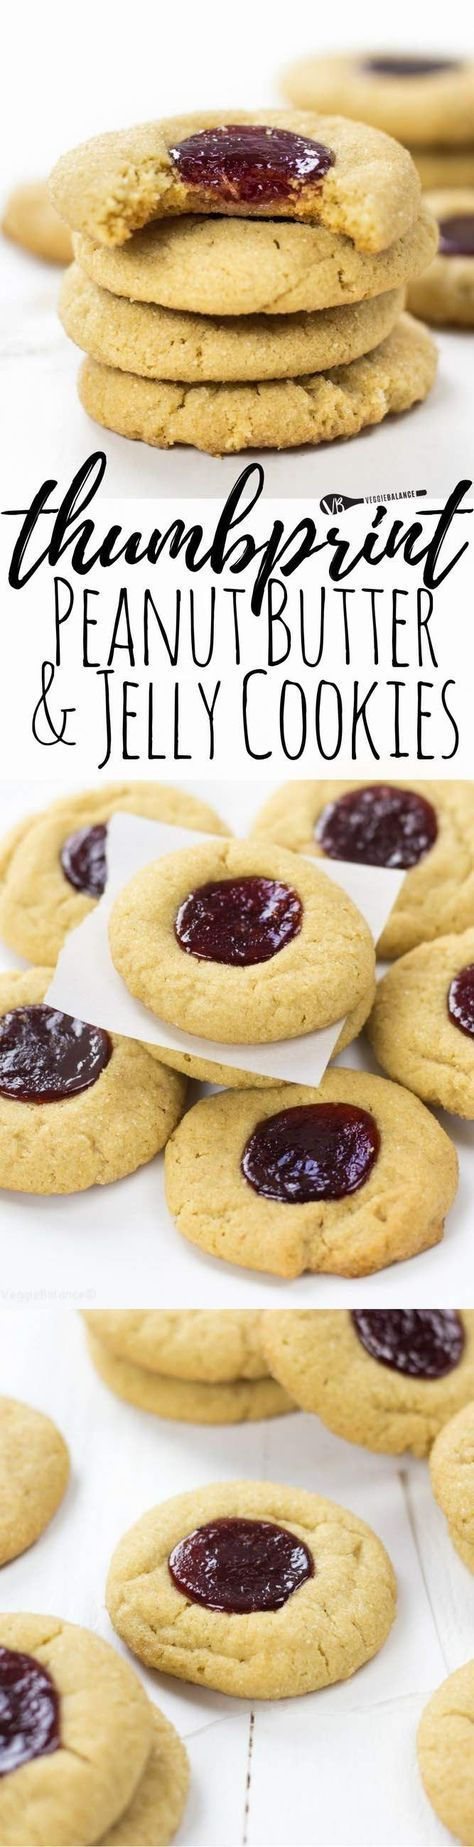 Peanut Butter and Jelly Thumbprint Cookies - the sweet, sweet taste of childhood in cookie form. A perfect peanut butter cookie base chocked full of flavor with a raspberry jelly thumbprint. You would never guess they are, in fact, gluten free. (Gluten-Free, Dairy-Free & Vegan friendly)